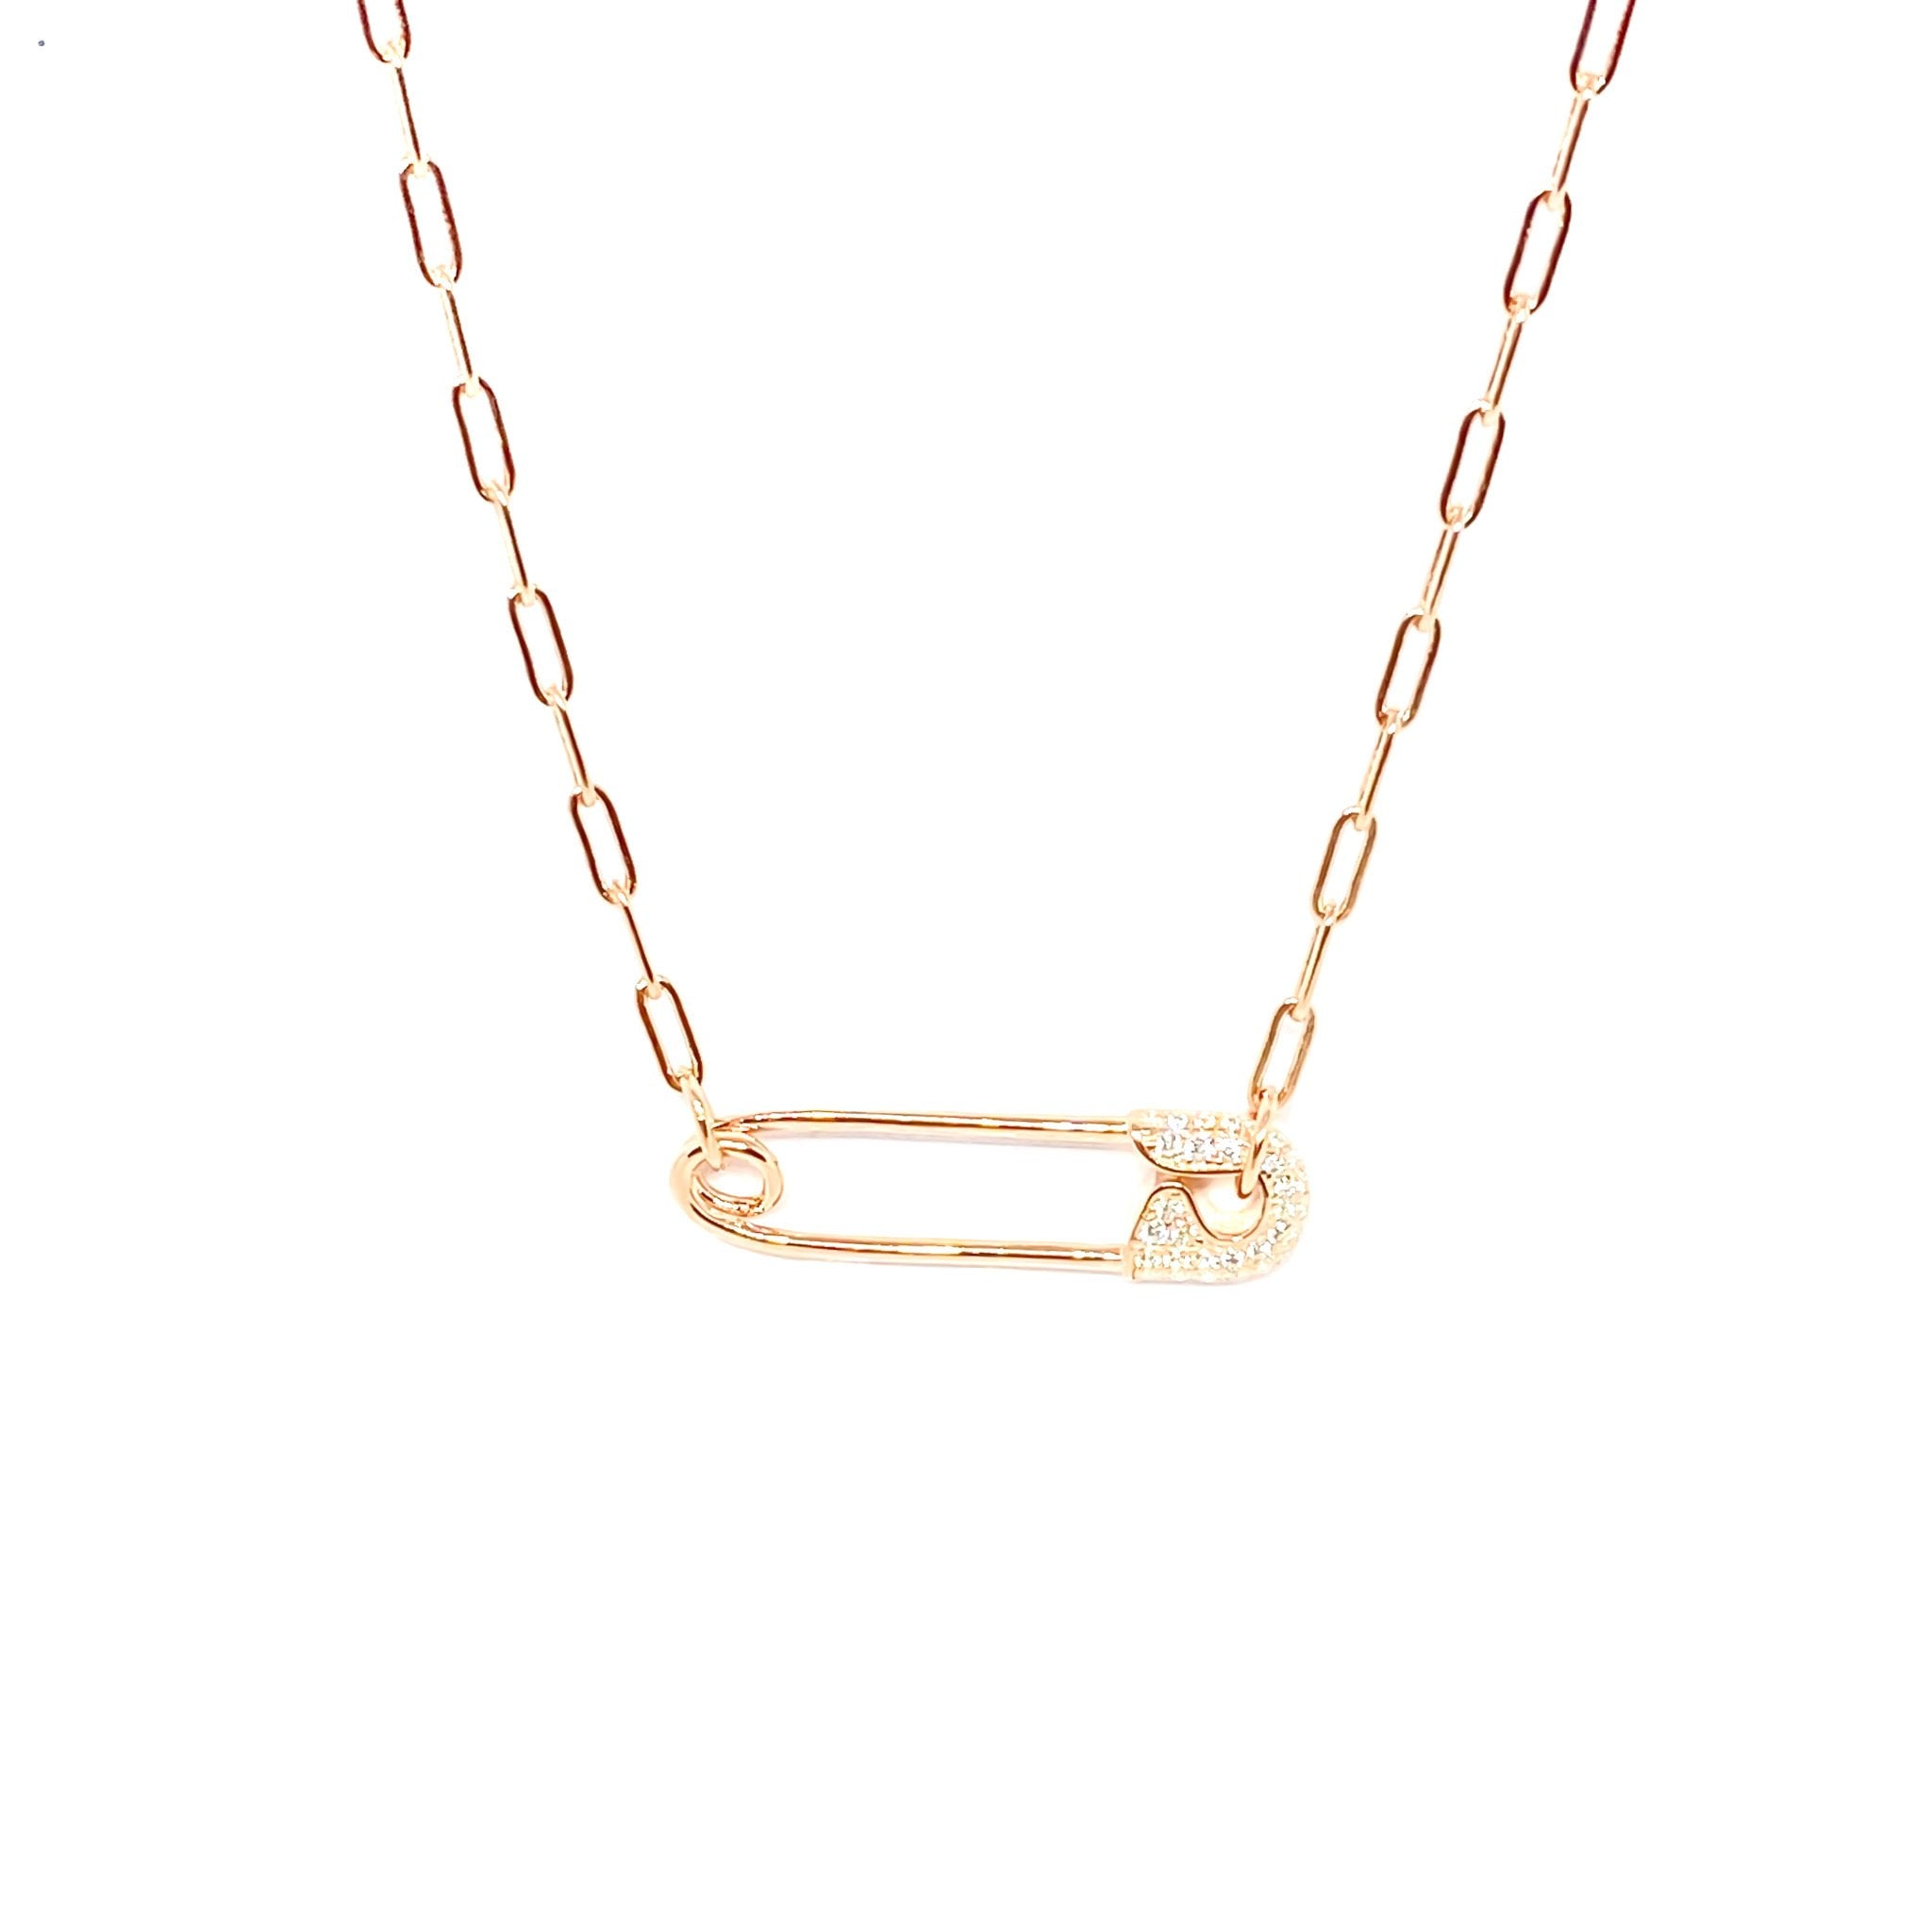 Drawn Chain Safety Pin Necklace